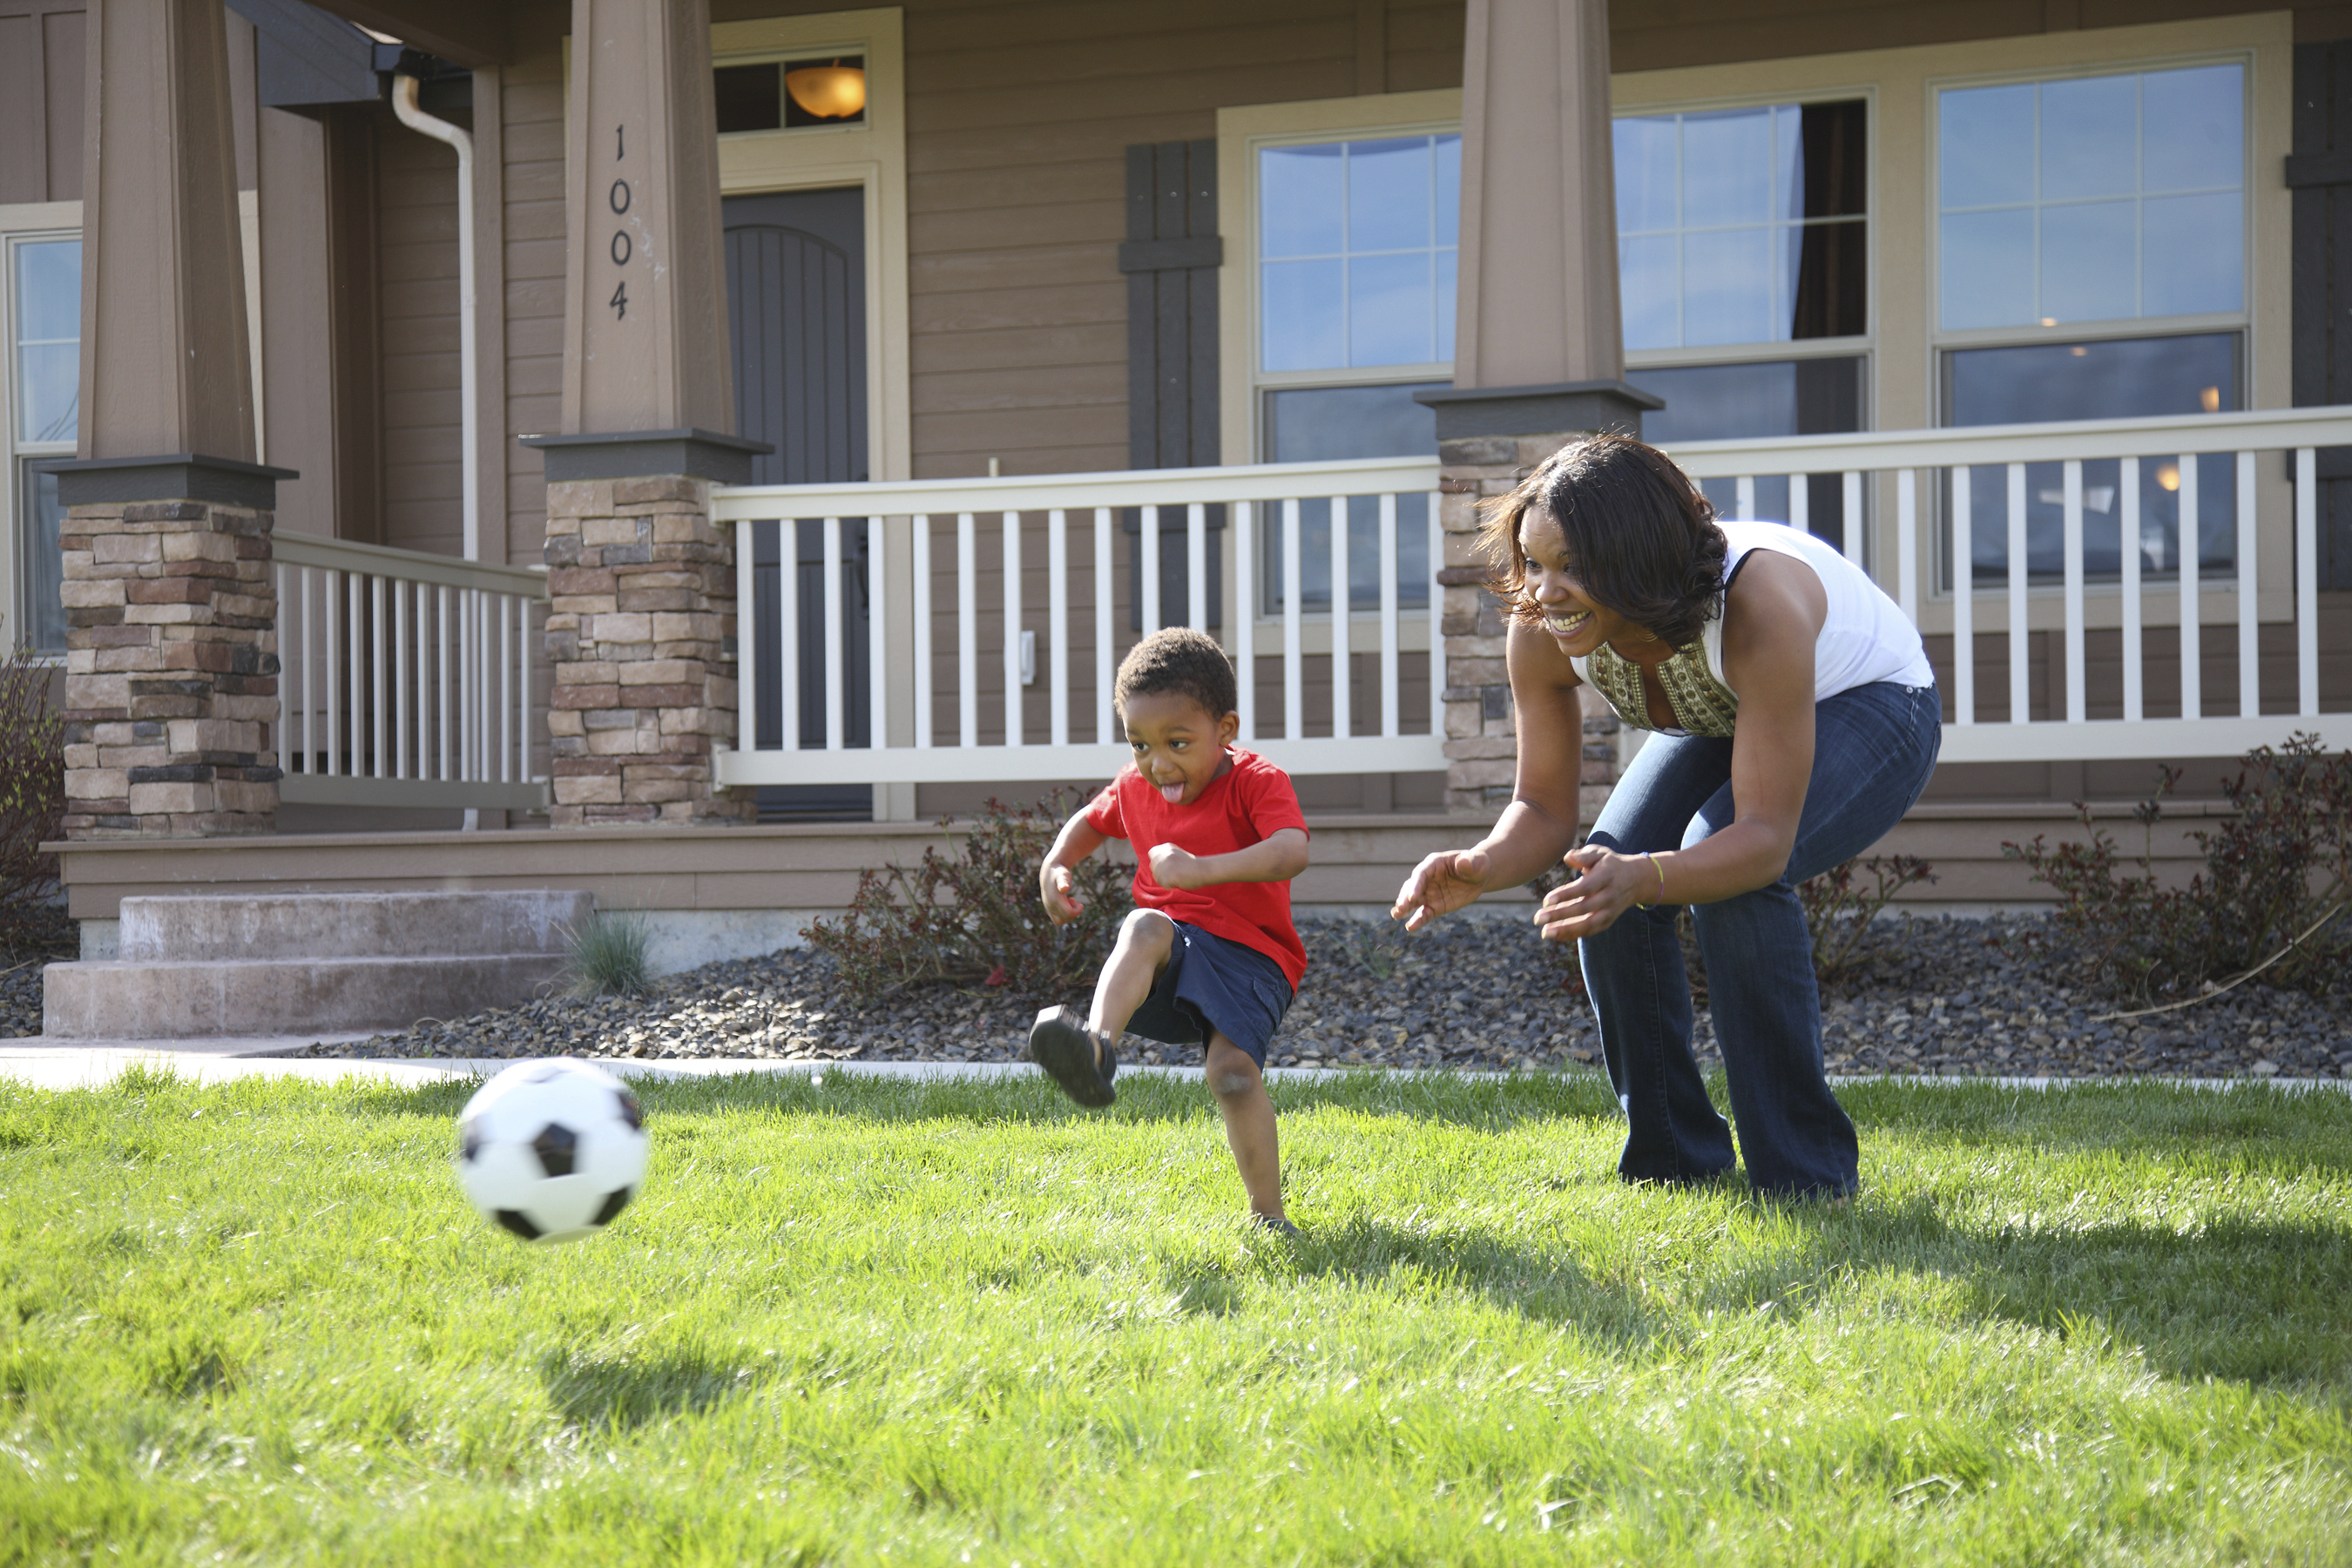 Mom and child playing soccer in yard